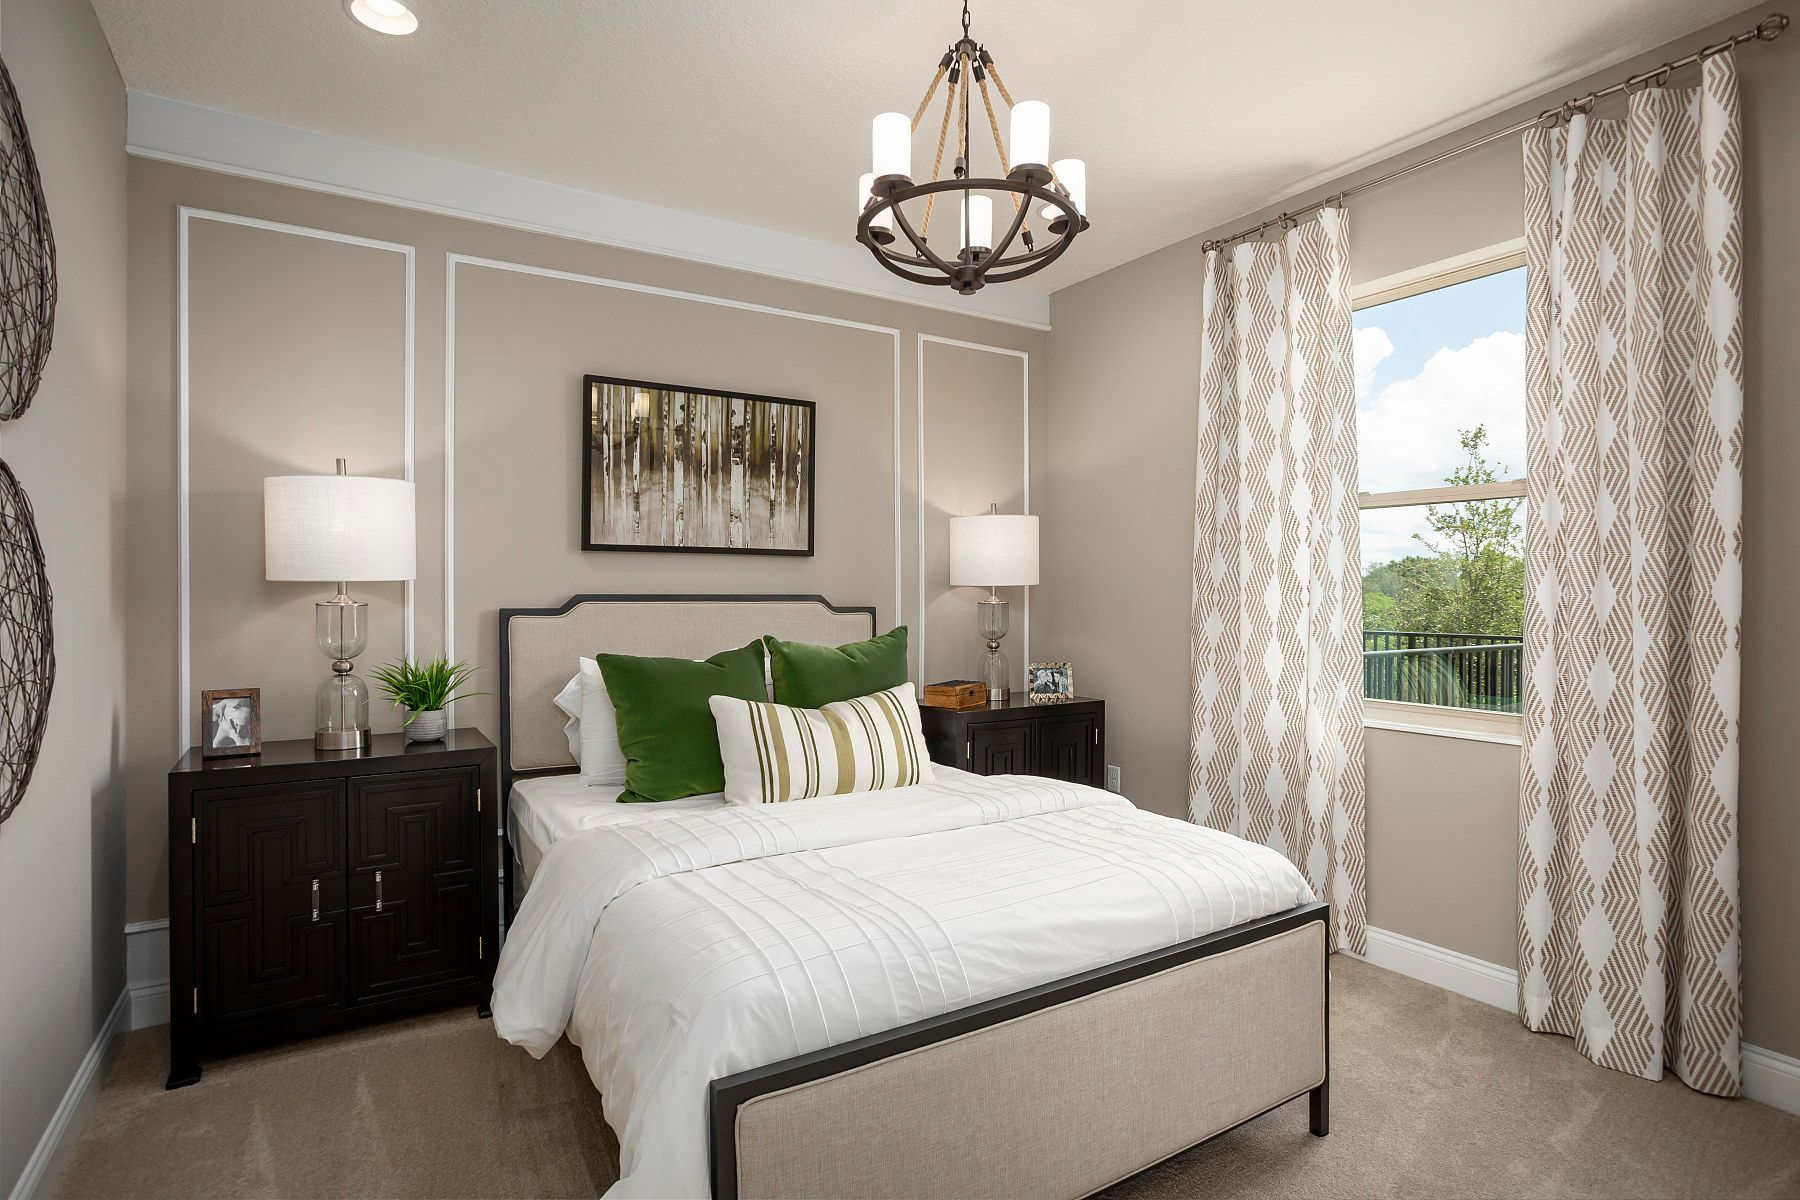 Bedroom featured in the Brookhaven Fl By M/I Homes in Orlando, FL